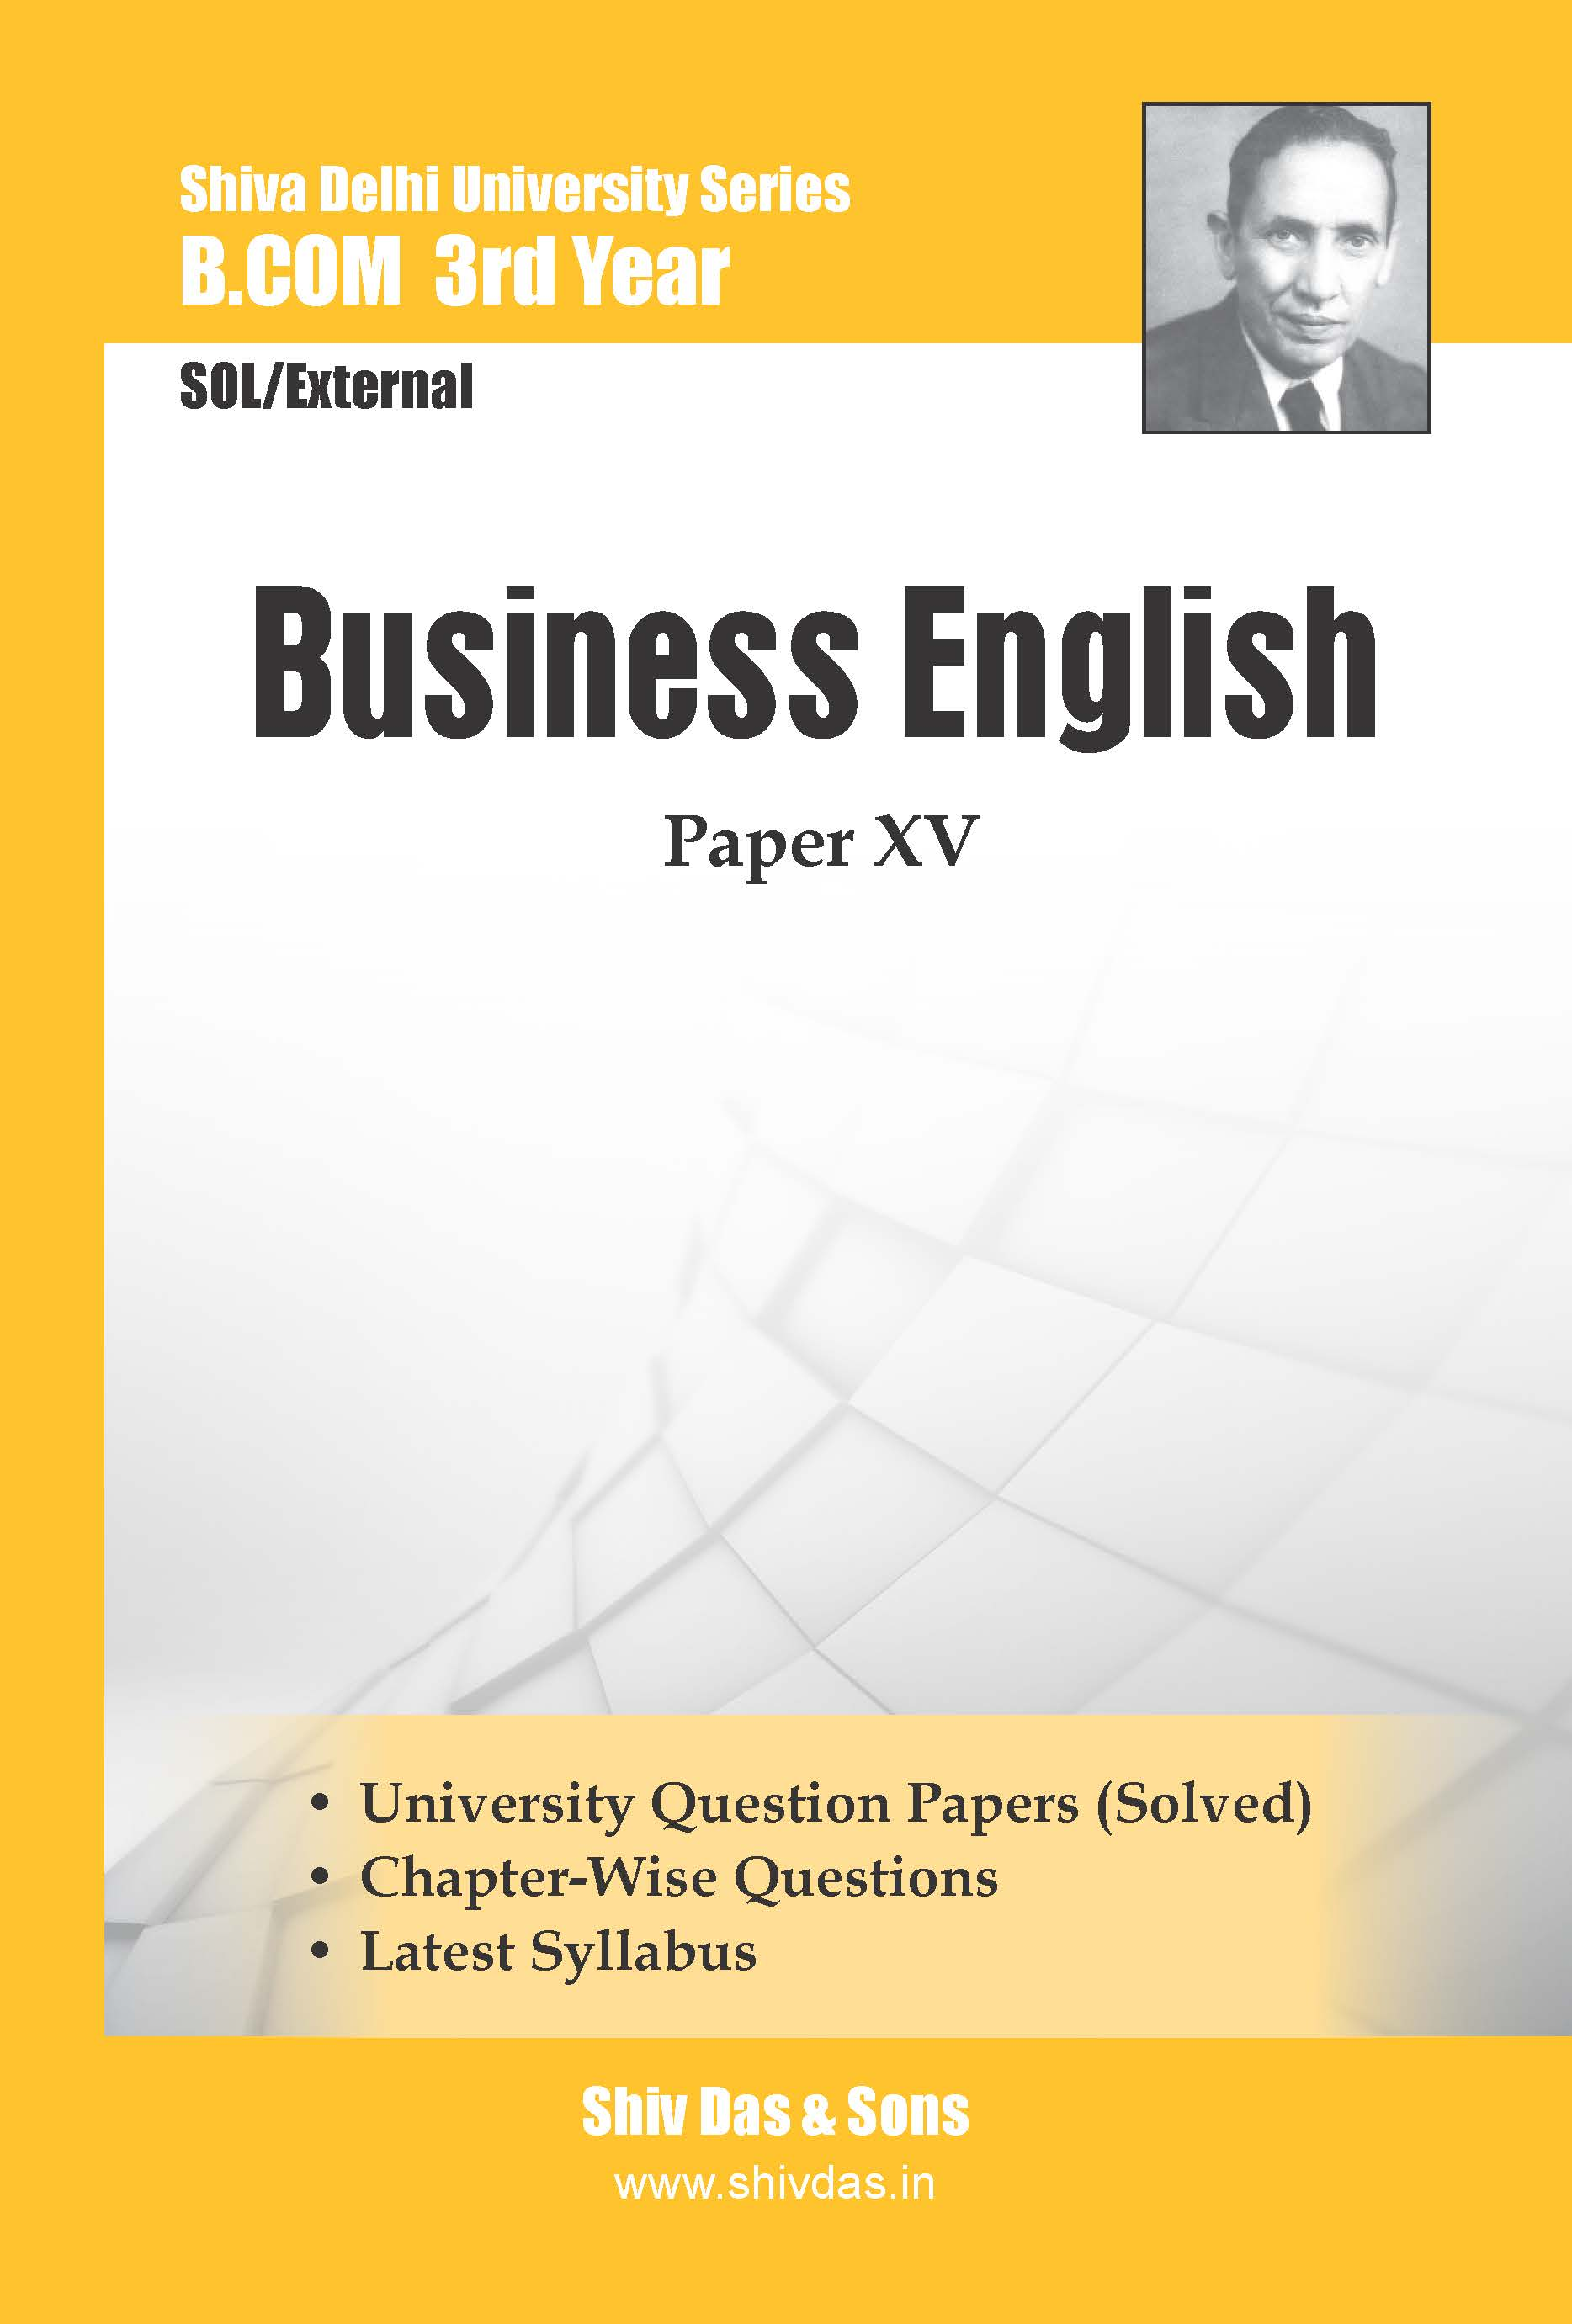 B.Com-3rd Year-SOL/External-Business English (Hindi Medium)-Shiv Das-Delhi University Series